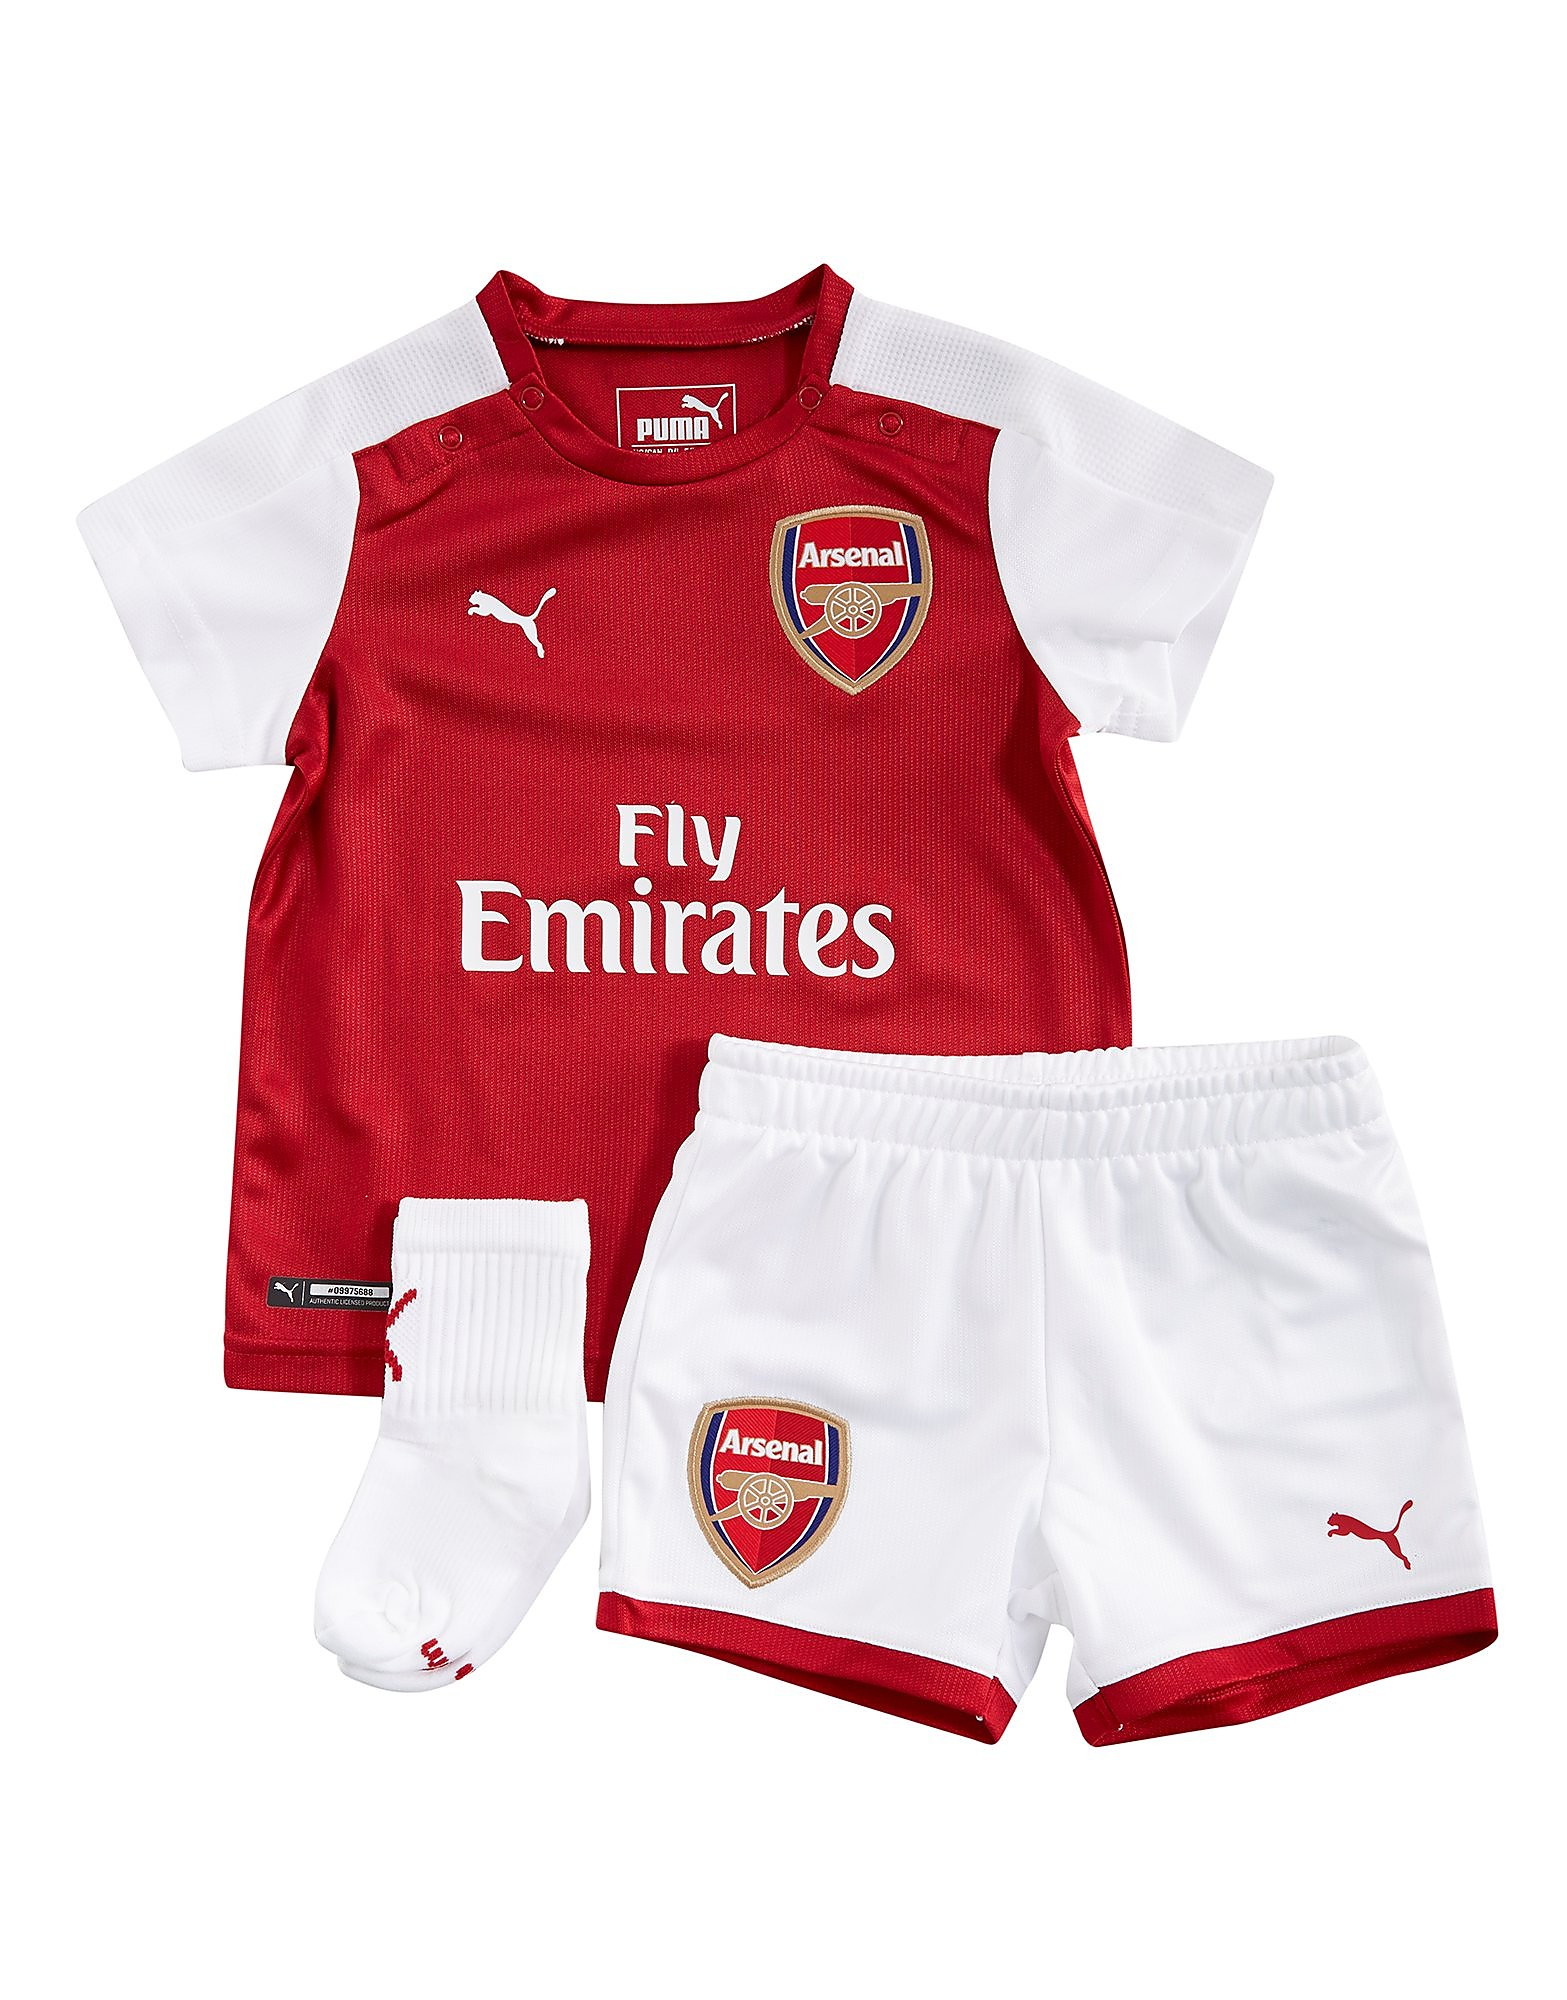 PUMA Arsenal FC 2017/18 Home Kit Infant